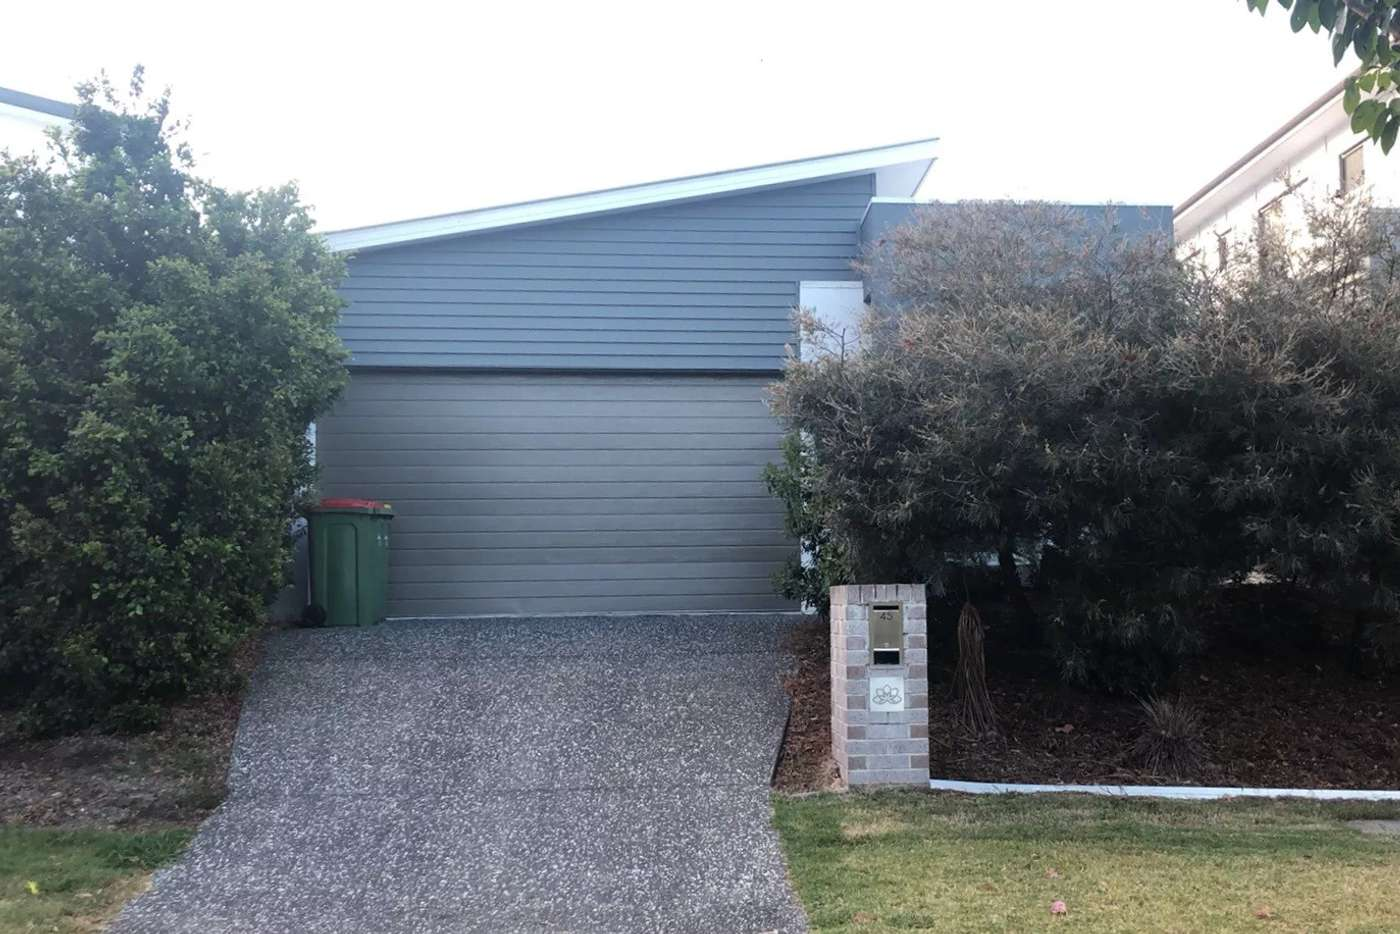 Main view of Homely house listing, 45 Bloom Ave, Coomera QLD 4209